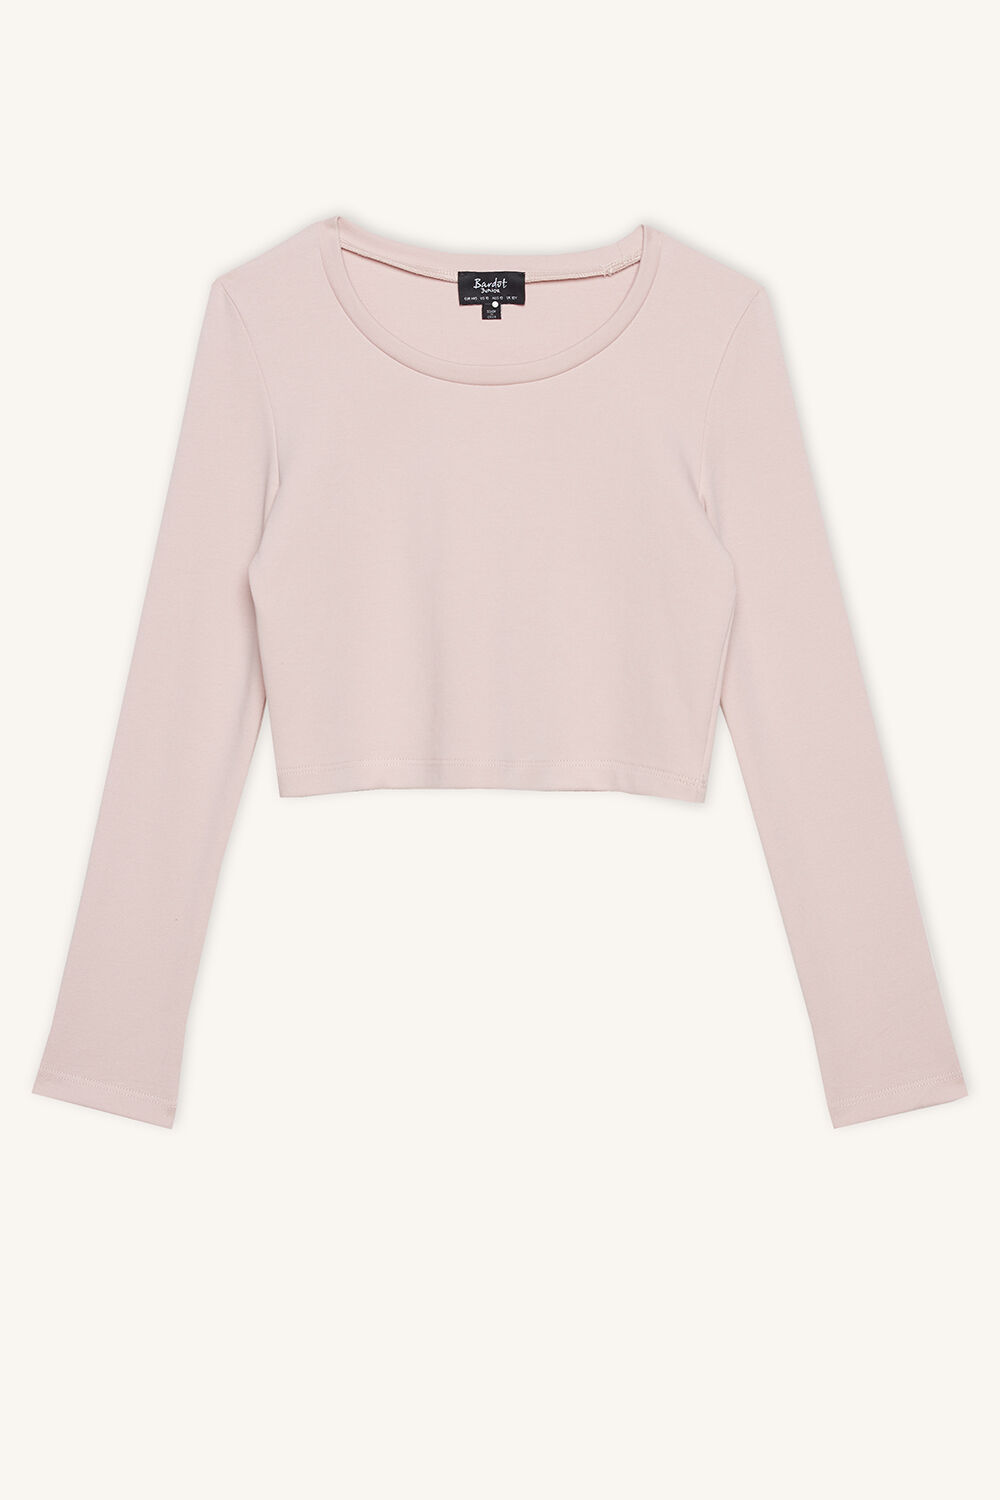 NINA SCOOP TOP in colour SILVER PEONY